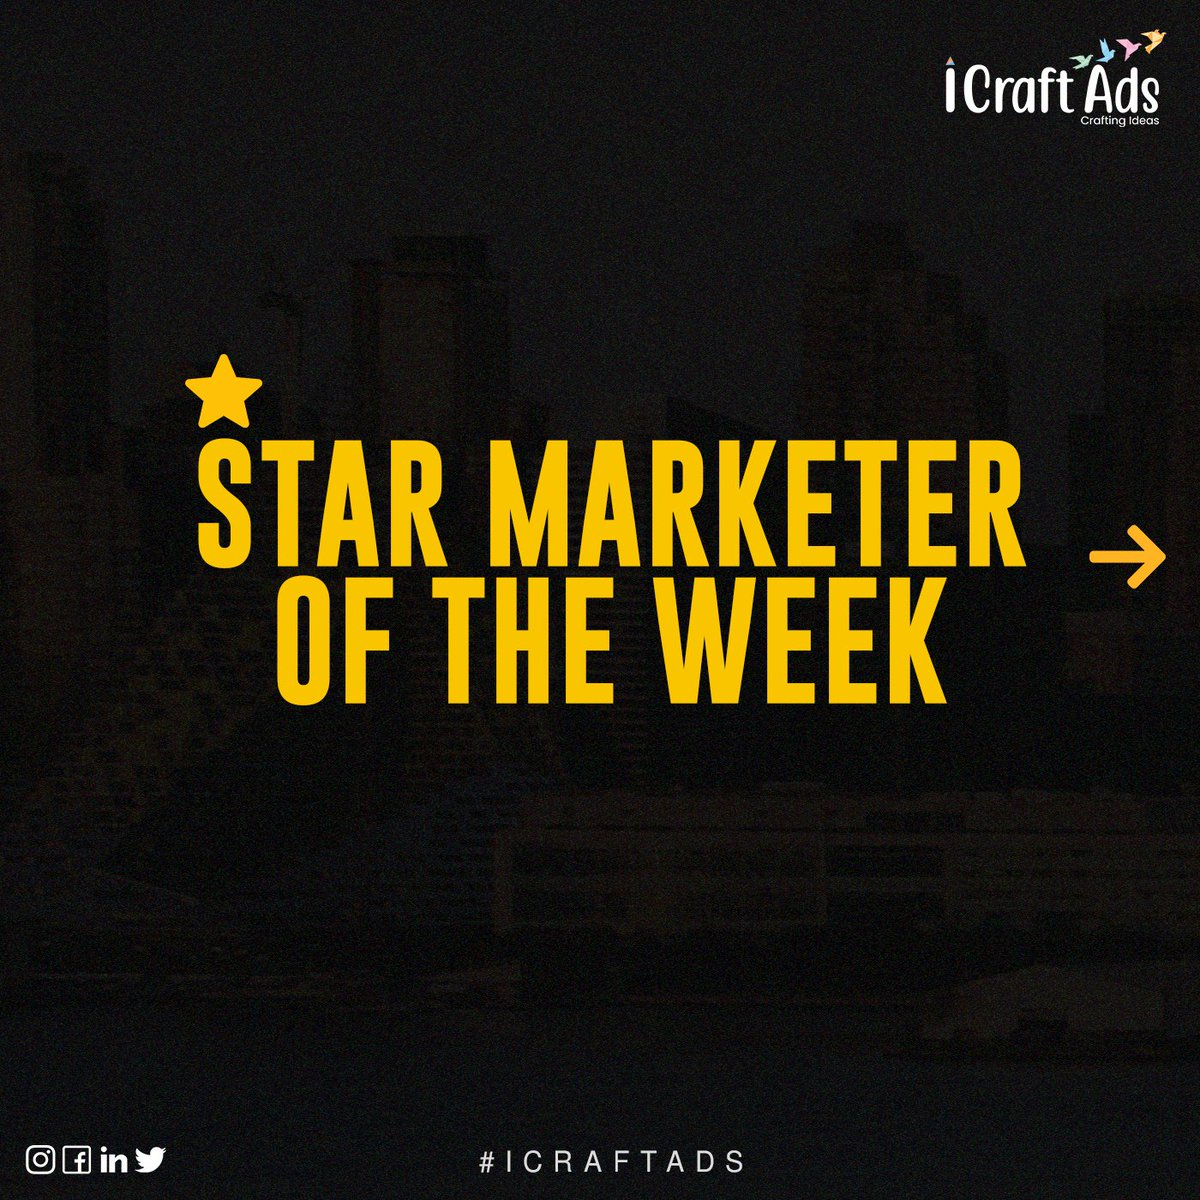 Star Marketer of the Week   McDonald's asks the audience to  Make a wish on Meteor Day! Brands expressing their gratitude to Doctors with creative perception on National Doctors Day.     #digitalmarketingtips  #brandstrategy #digitalmarketingagencypic.twitter.com/5b92qjmggP